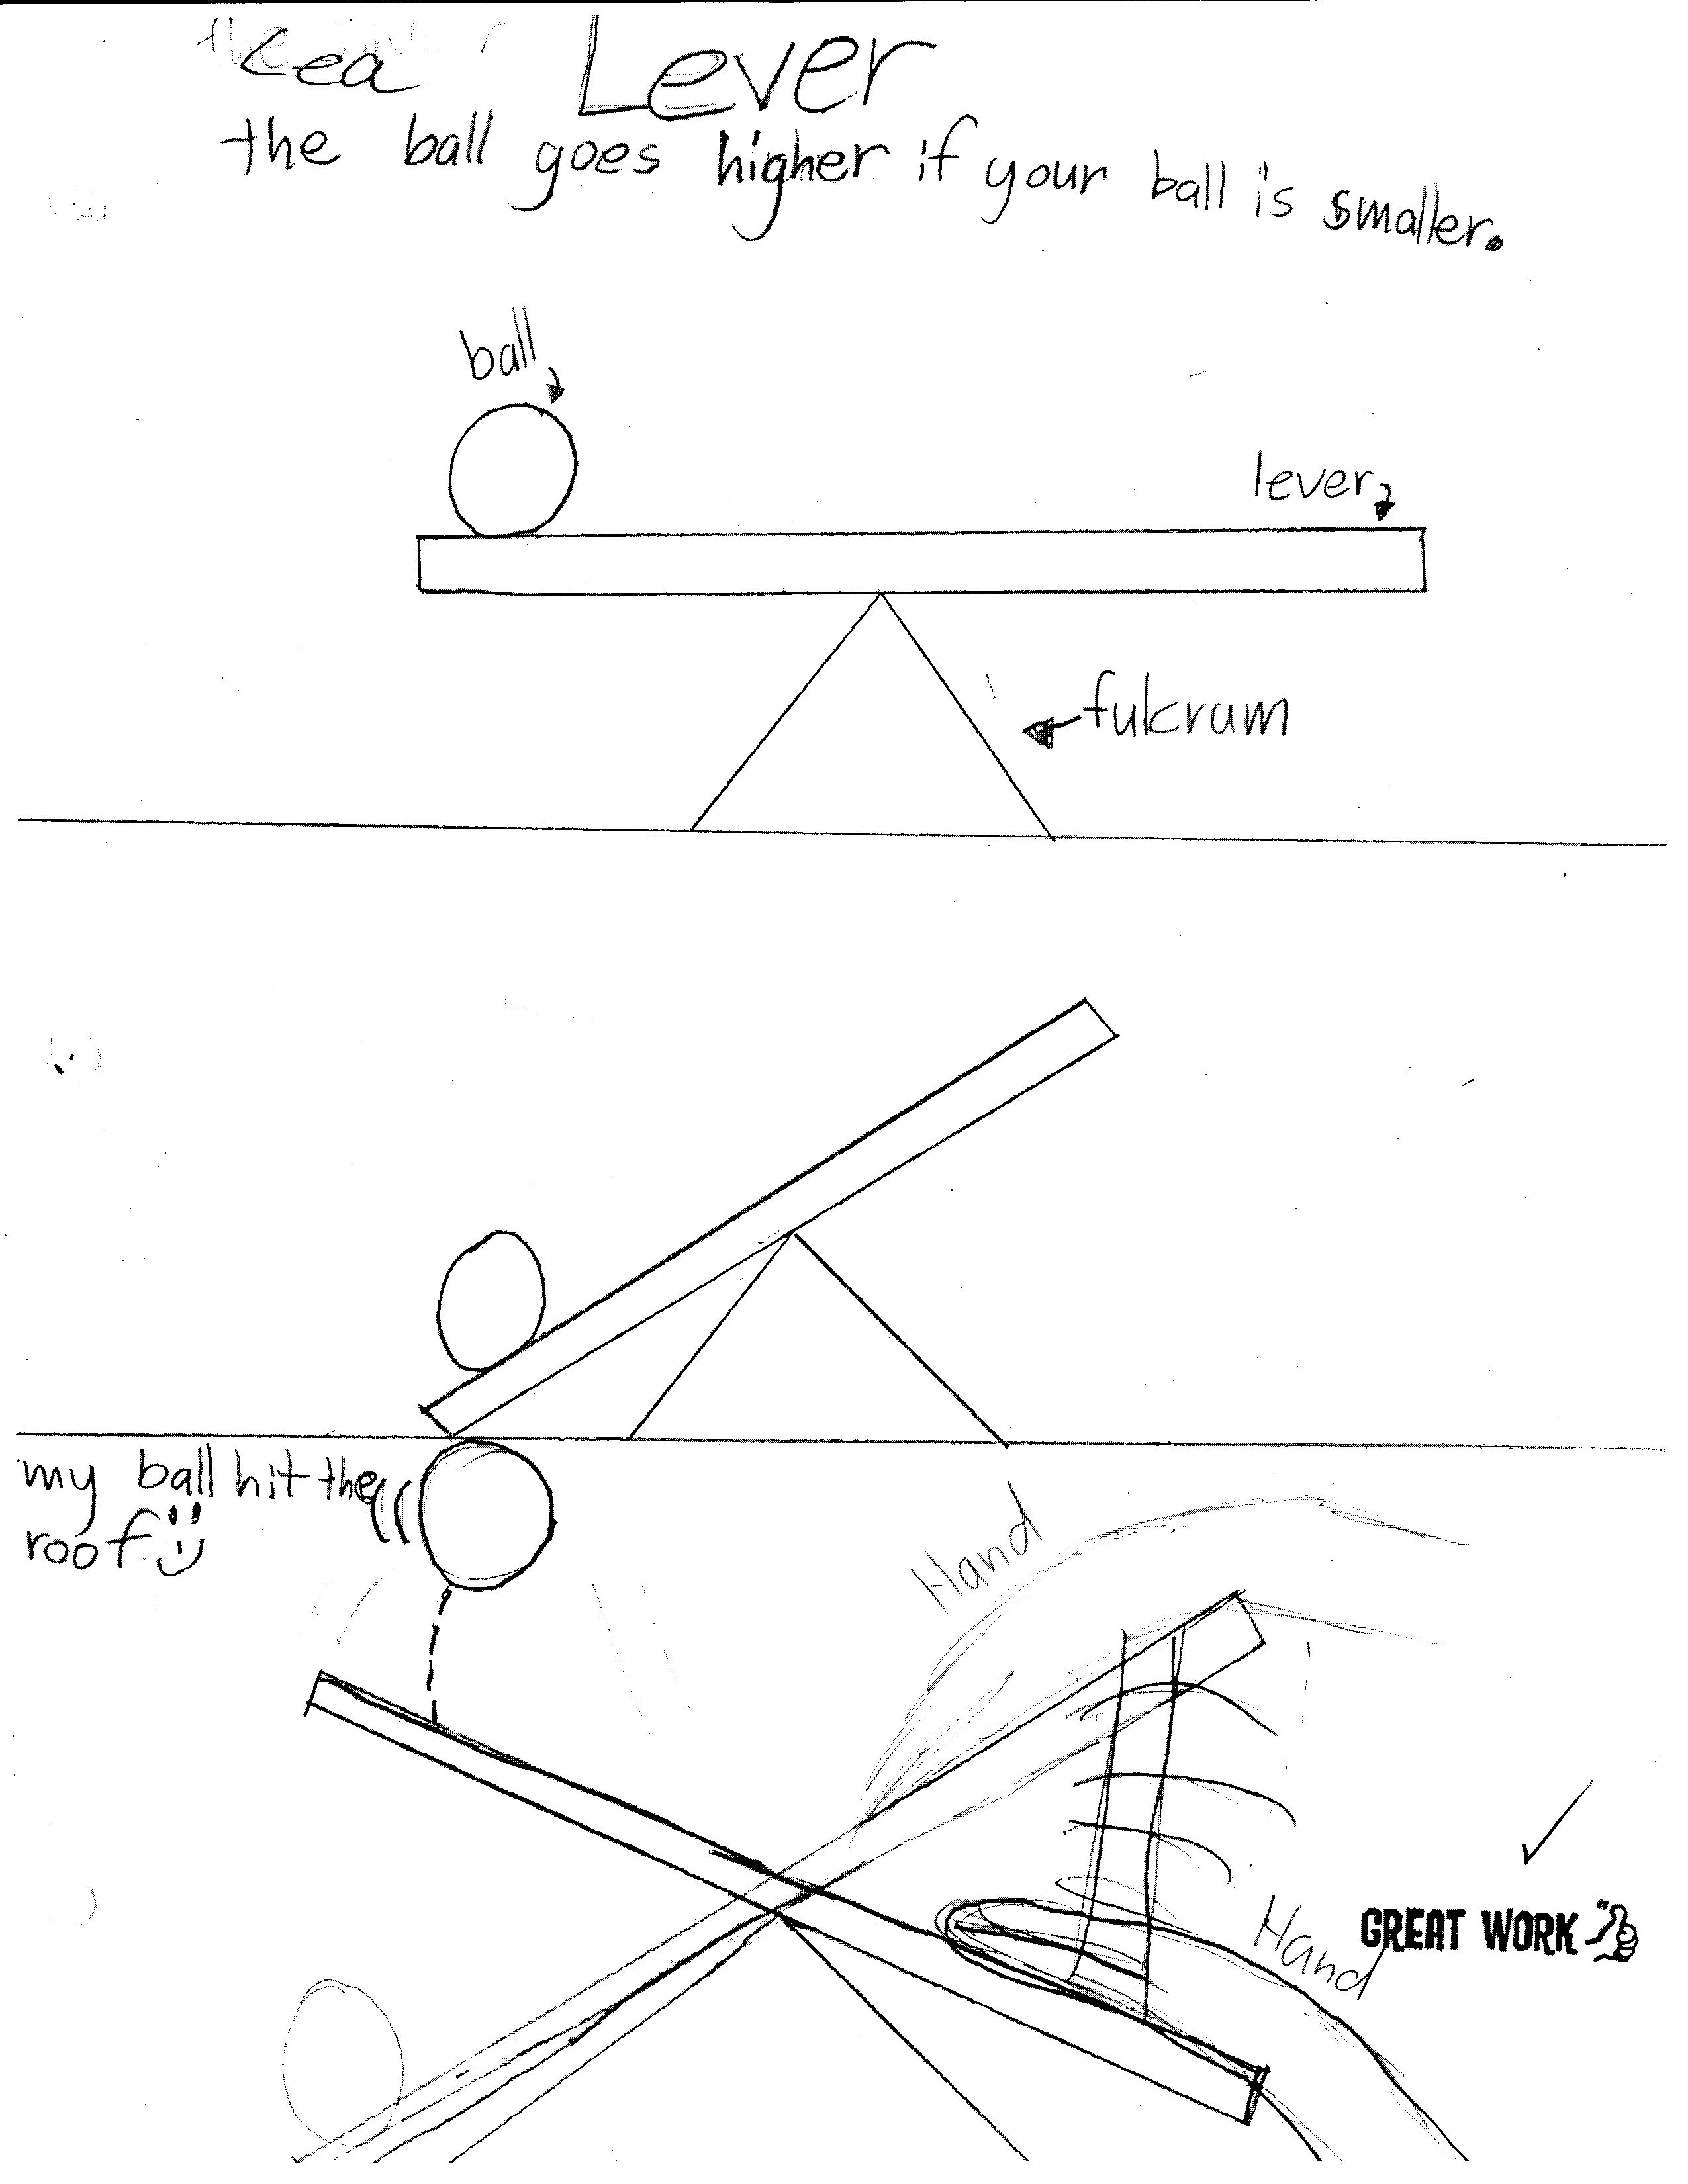 Worksheet For Grade 5 On Simple Machines